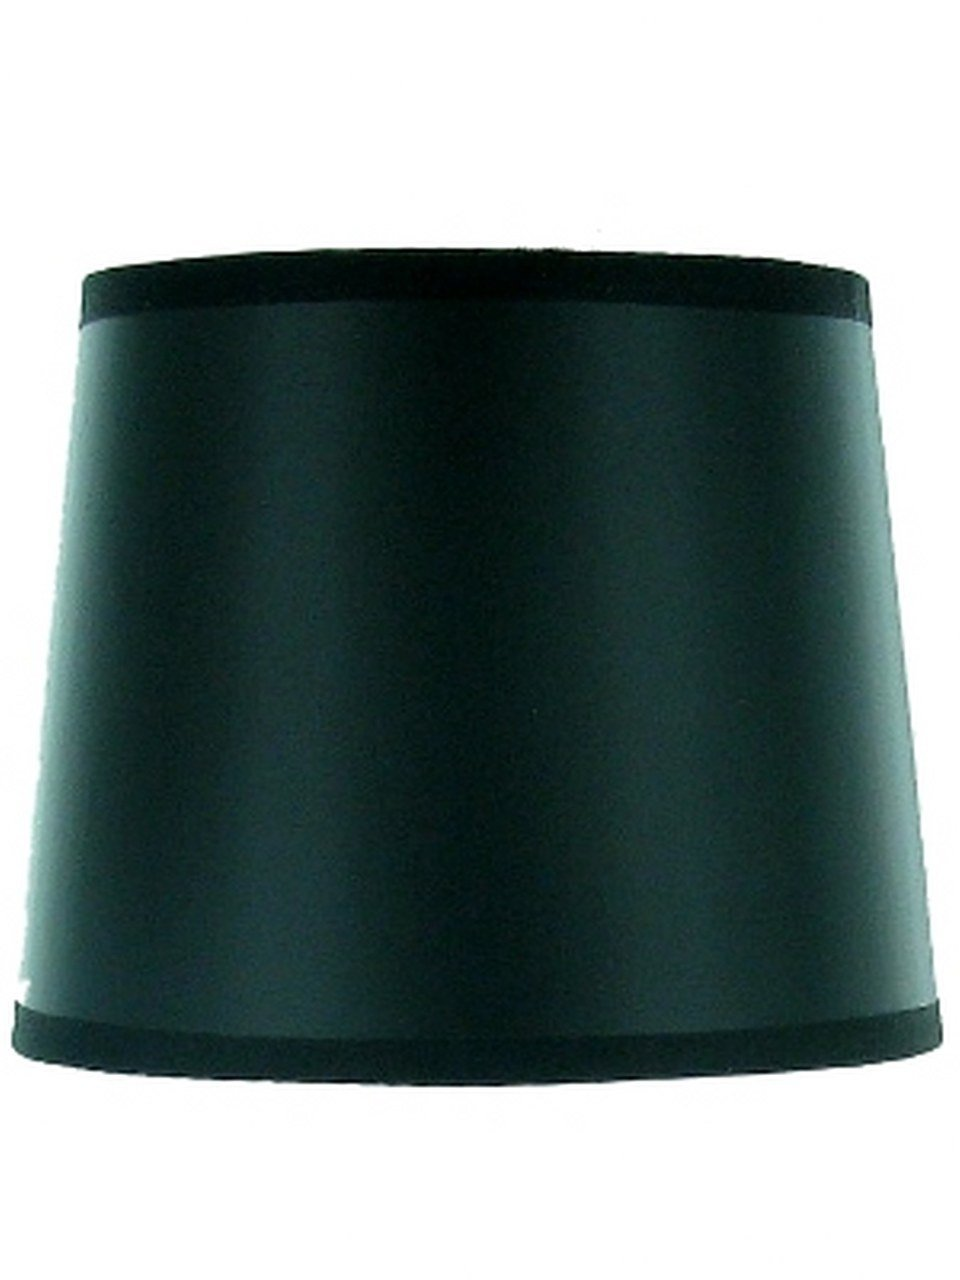 Upgradelights Black with Gold Foil Lining 5 Inch Drum Chandelier Clip On Shade (4x5x5)